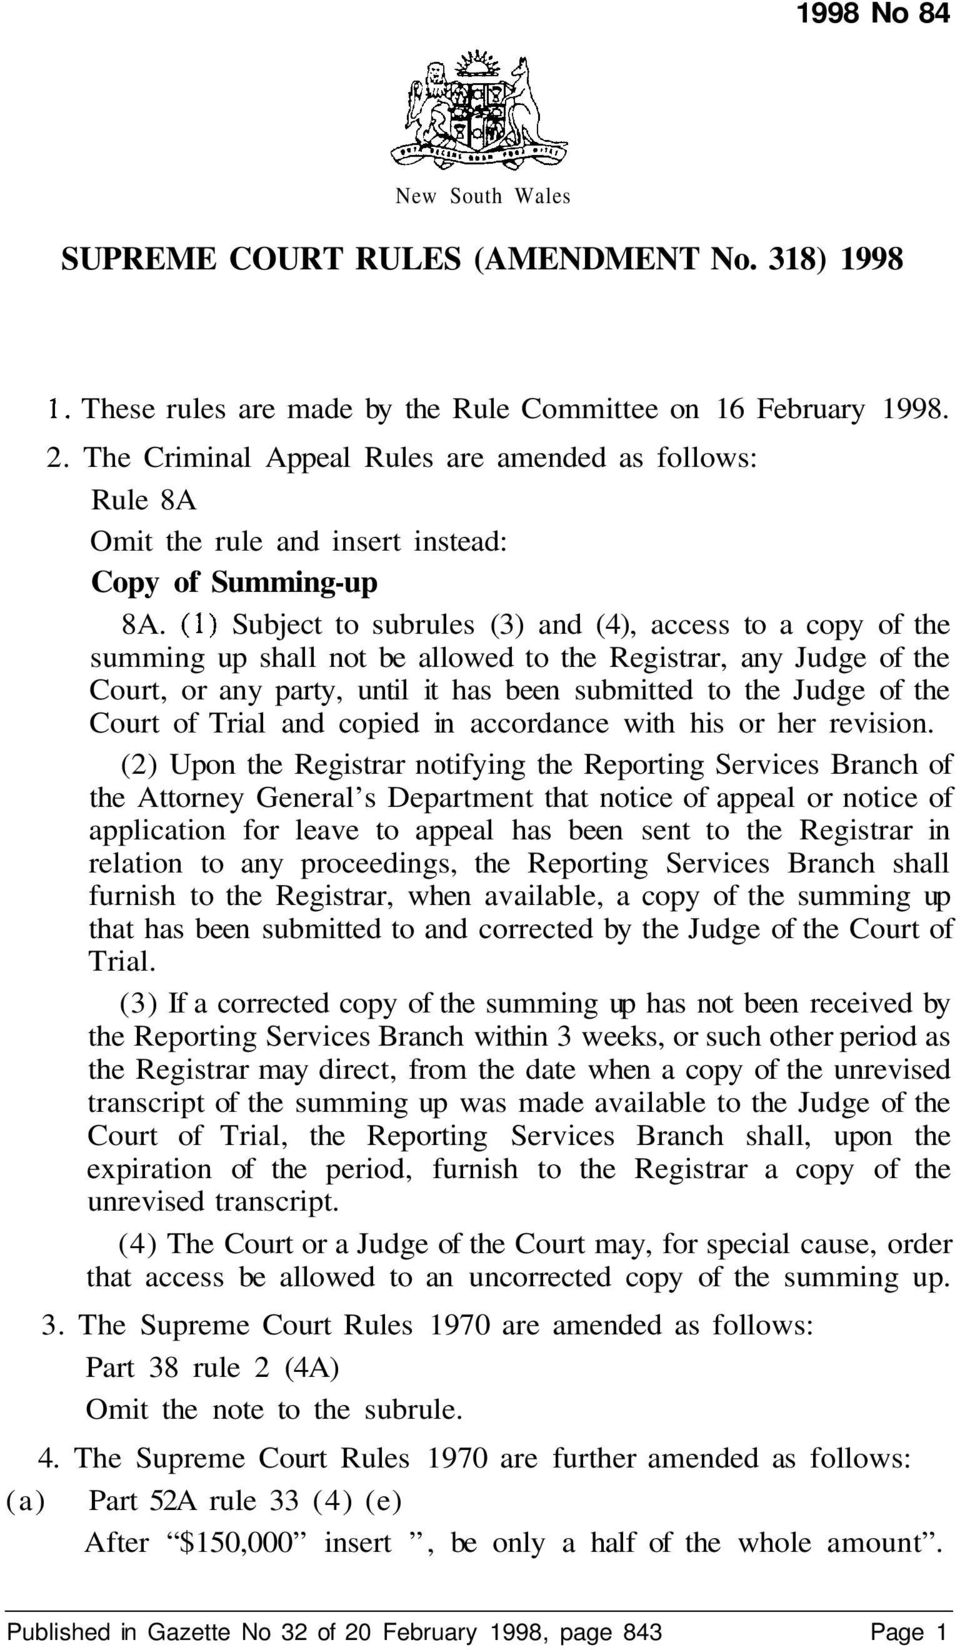 (1) Subject to subrules (3) and (4), access to a copy of the summing up shall not be allowed to the Registrar, any Judge of the Court, or any party, until it has been submitted to the Judge of the